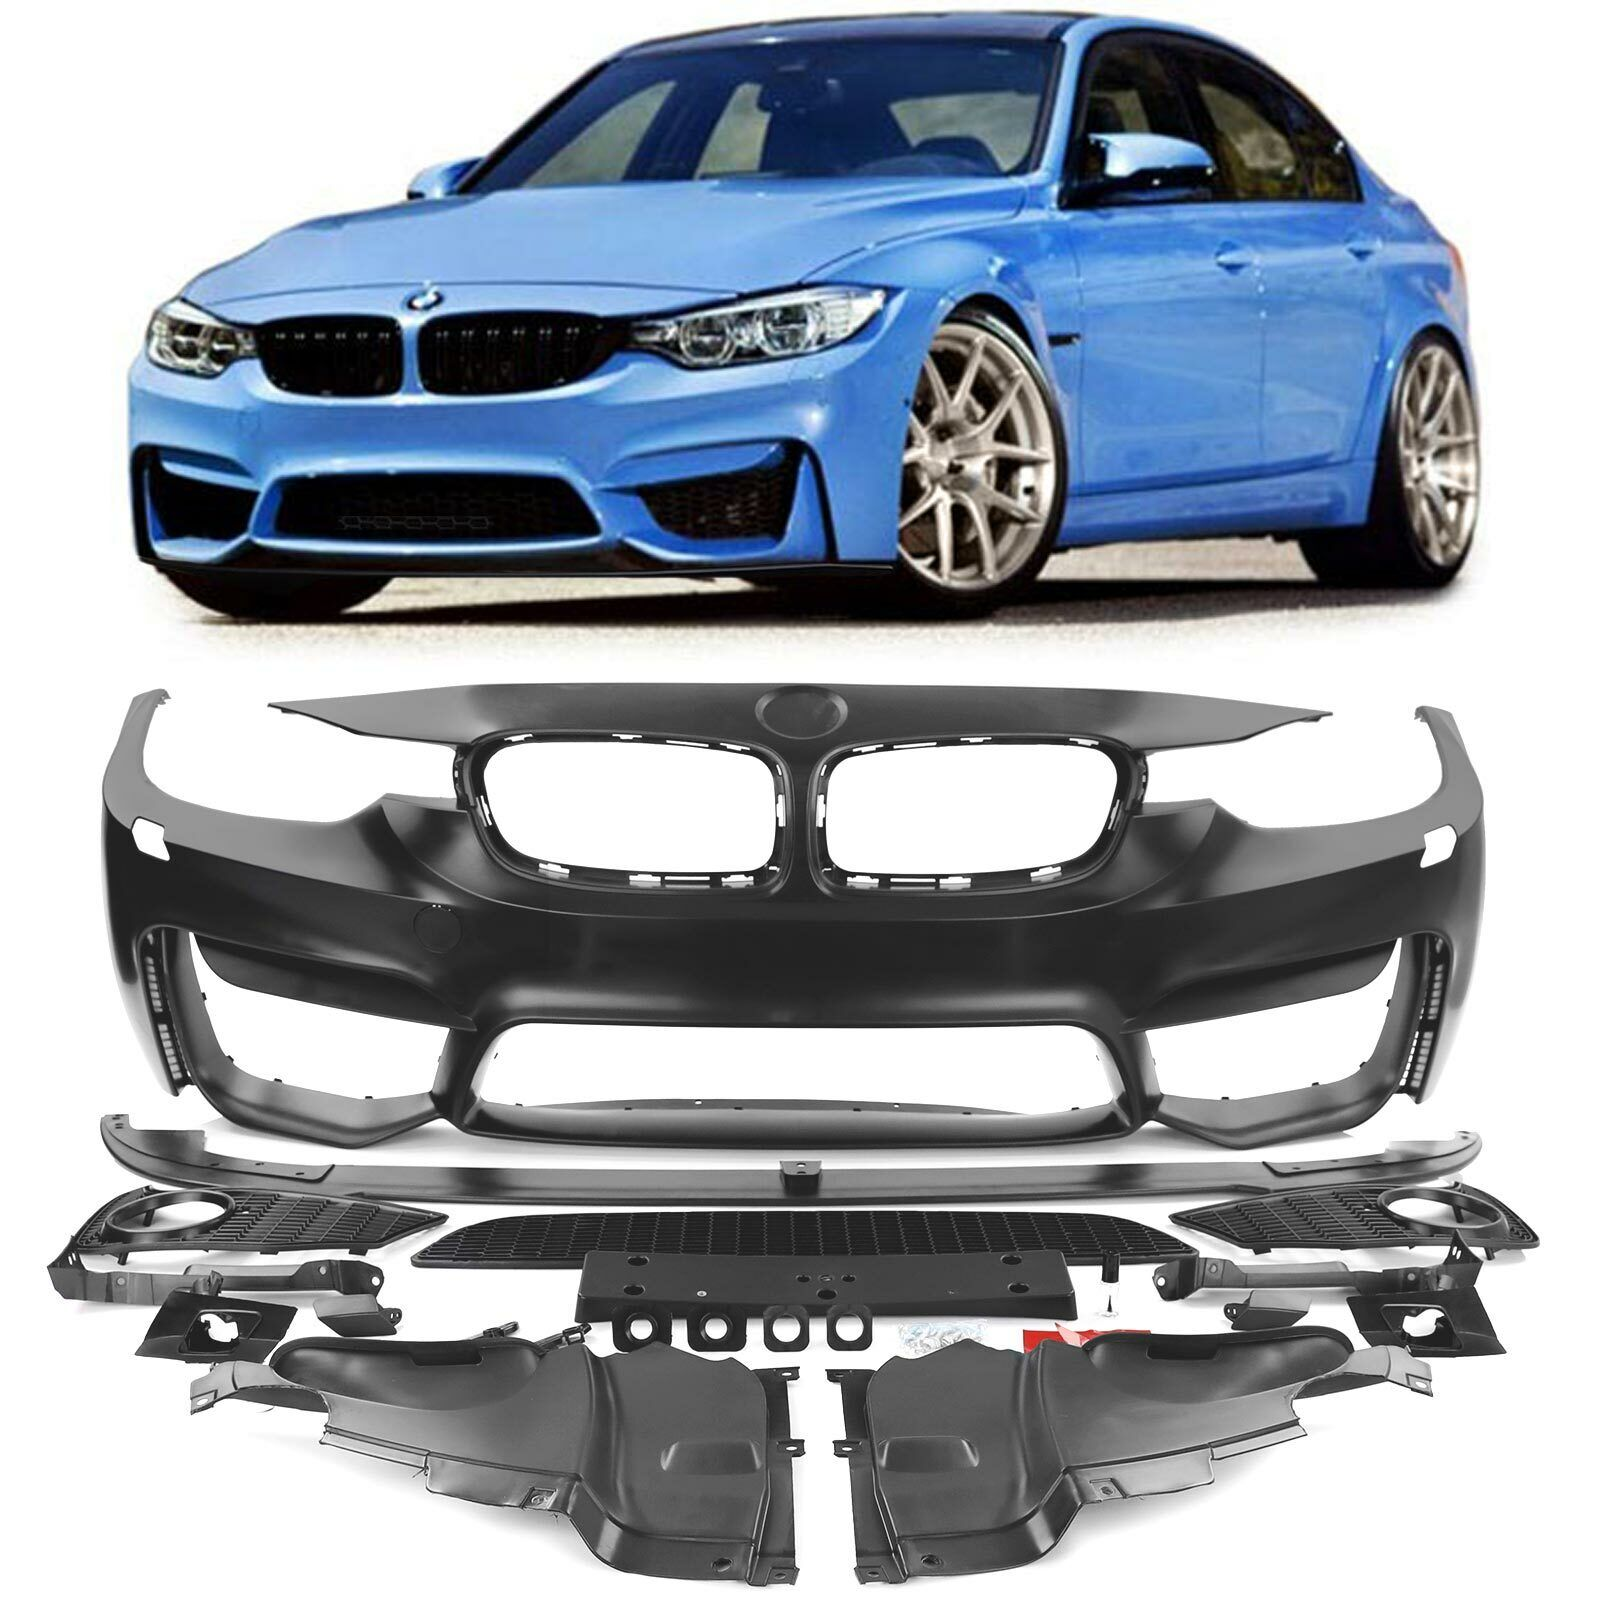 Brand New Front Bumper Primed No Pdc With Washer Hole M-Sport Bmw 3 F30 2012